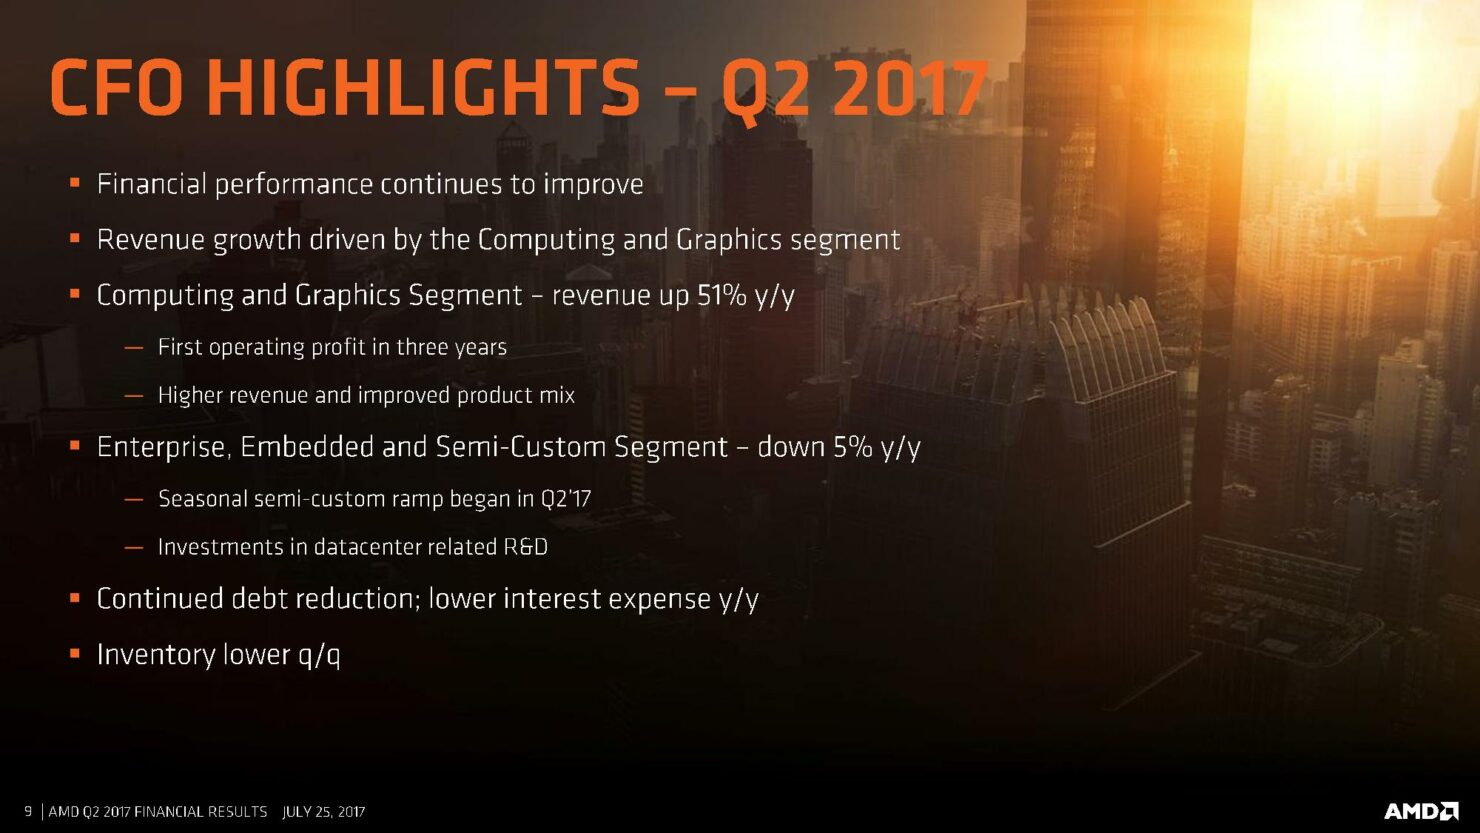 amd-cfo-commentary-slides-q2-17-page-009